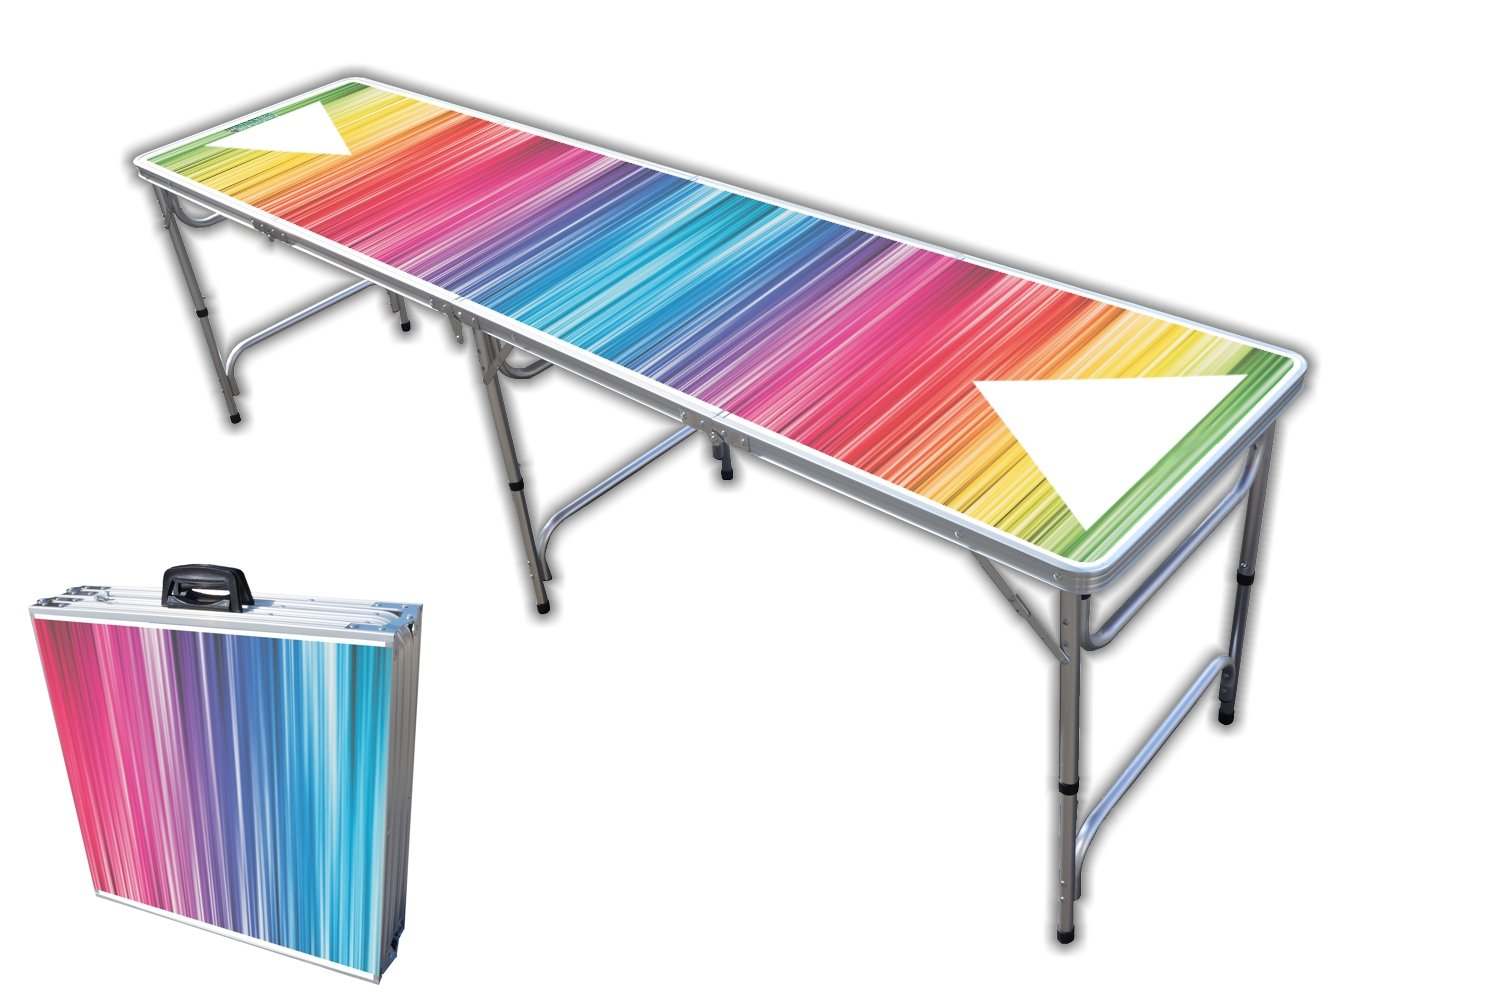 8-Foot Professional Beer Pong Table - Color Spectrum Graphic by PartyPongTables.com